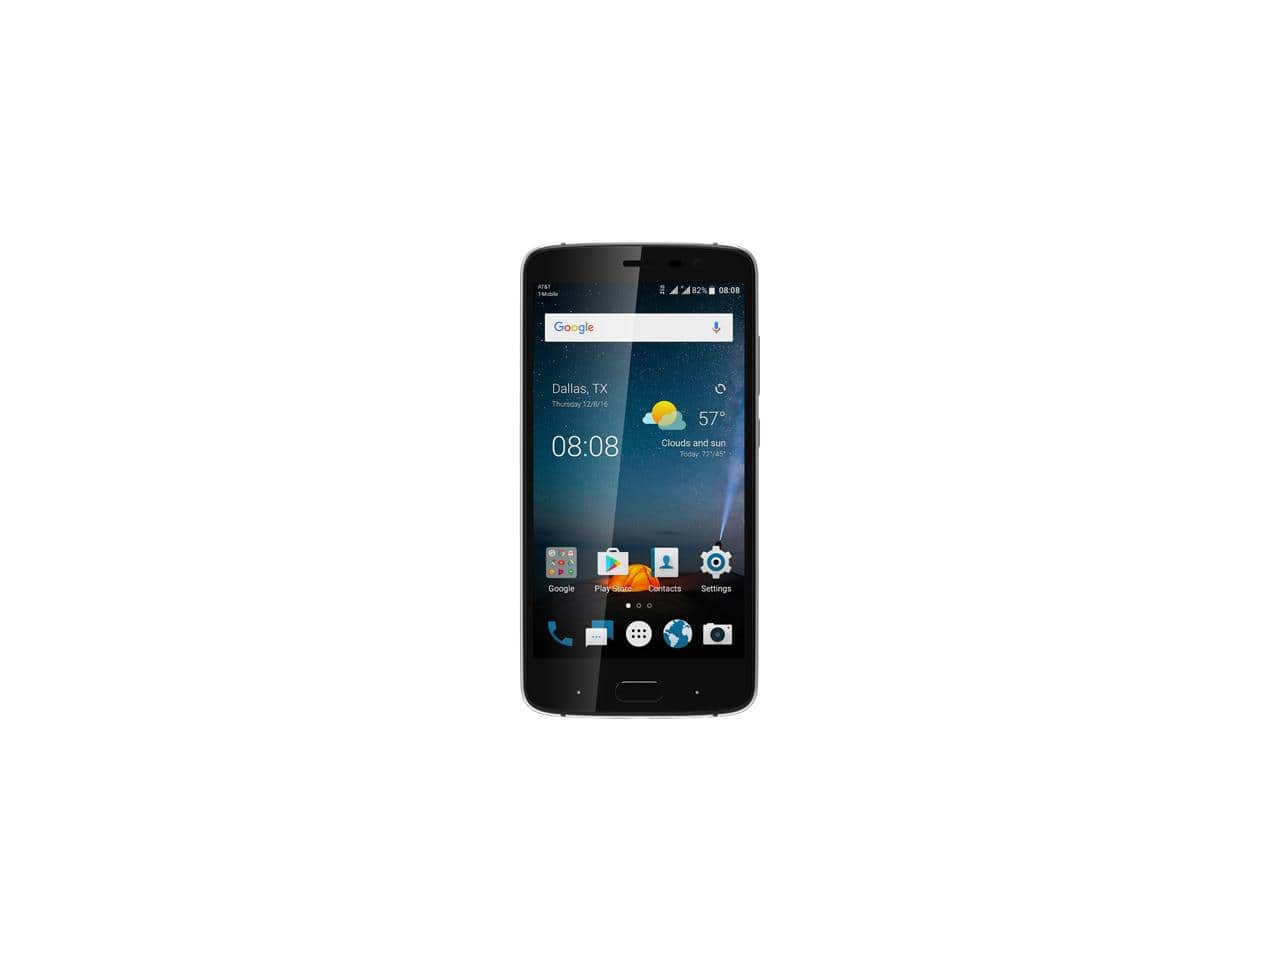 "32 GB ZTE Blade V8 Pro 5.5"" 1080p 4G LTE Unlocked GSM Android Smartphone with Dual-Camera for $199.99 AC & More + Free Shipping @ Newegg.com"